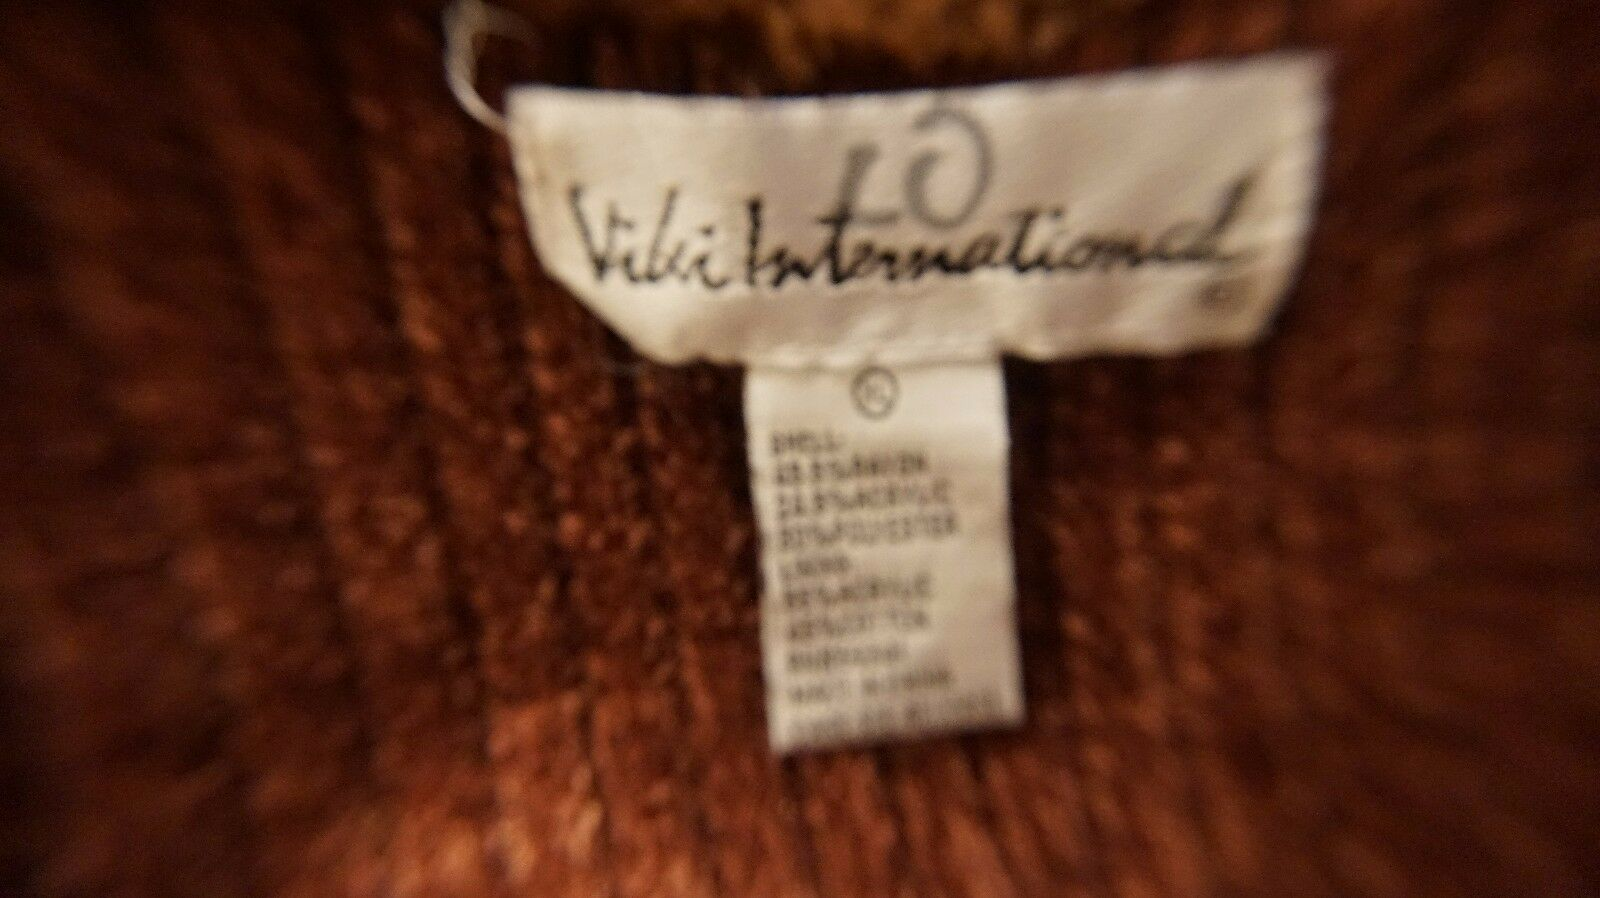 Vintage amazing 70's Vilxi international SZ XL woman coat so so so warm and cool look 248099